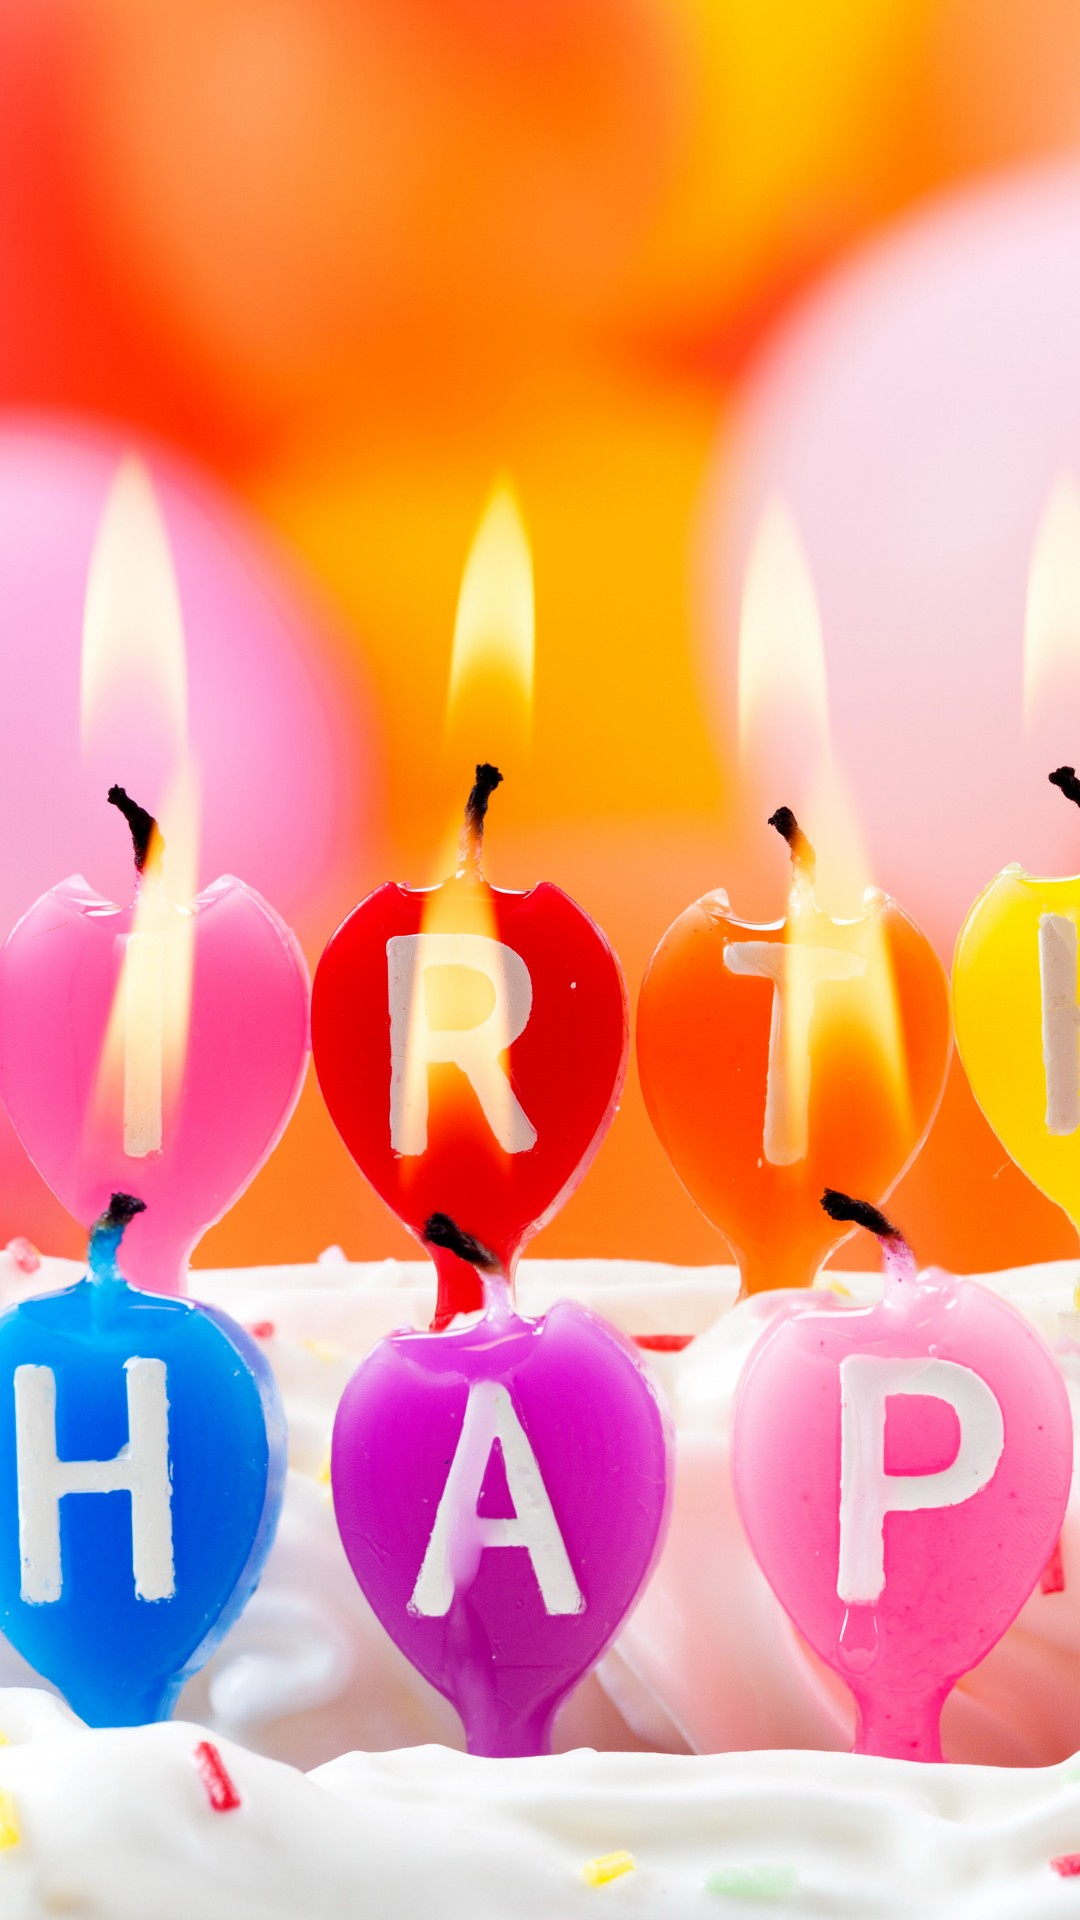 Birthday Wallpaper With Quotes Download Wallpaper Happy Birthday Candles Fire Holiday